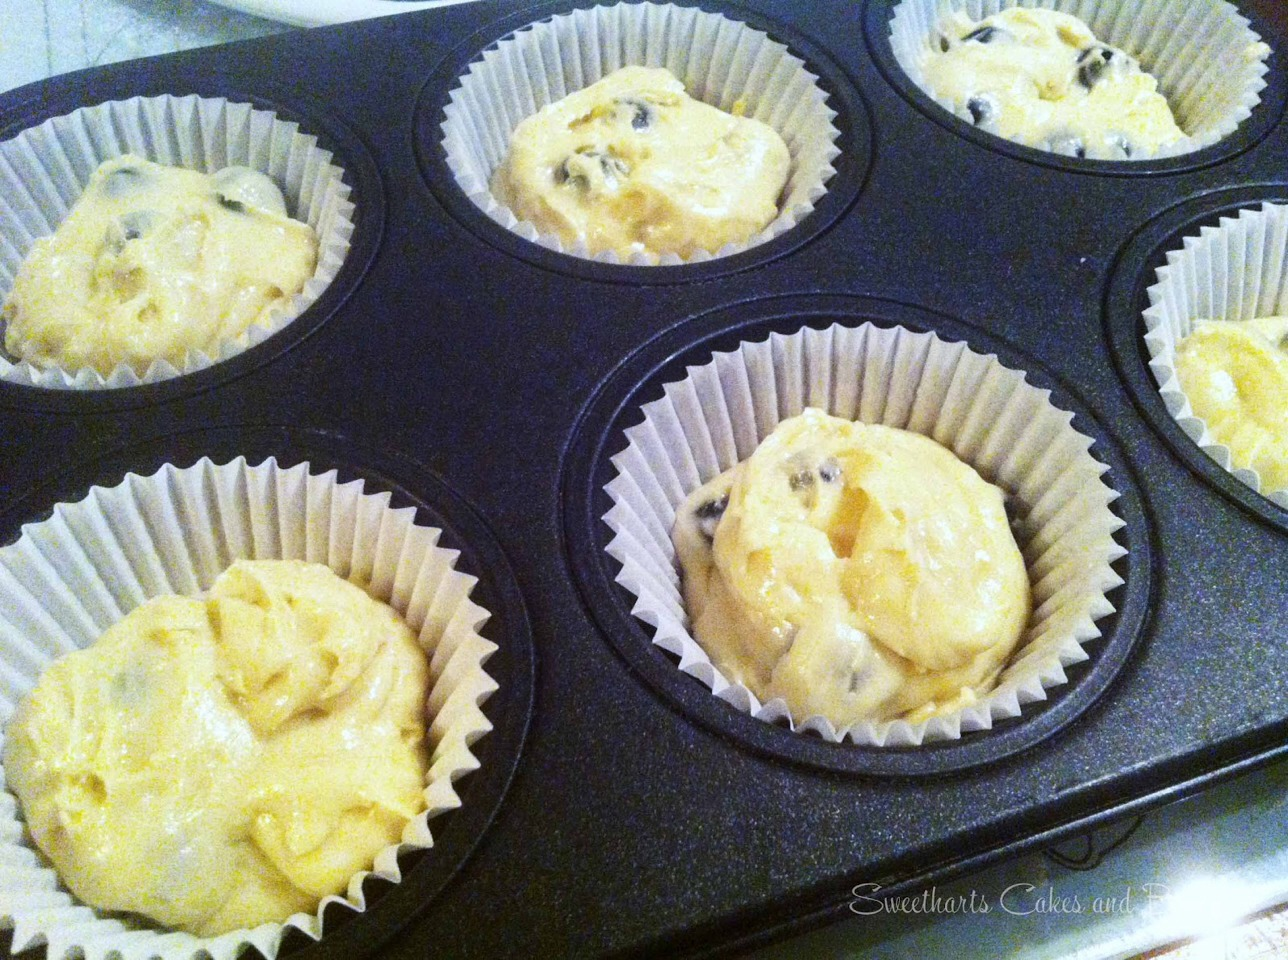 Put your mixture into your bun cases and put in the oven! Leave for 15-30 minutes but check every five minutes!